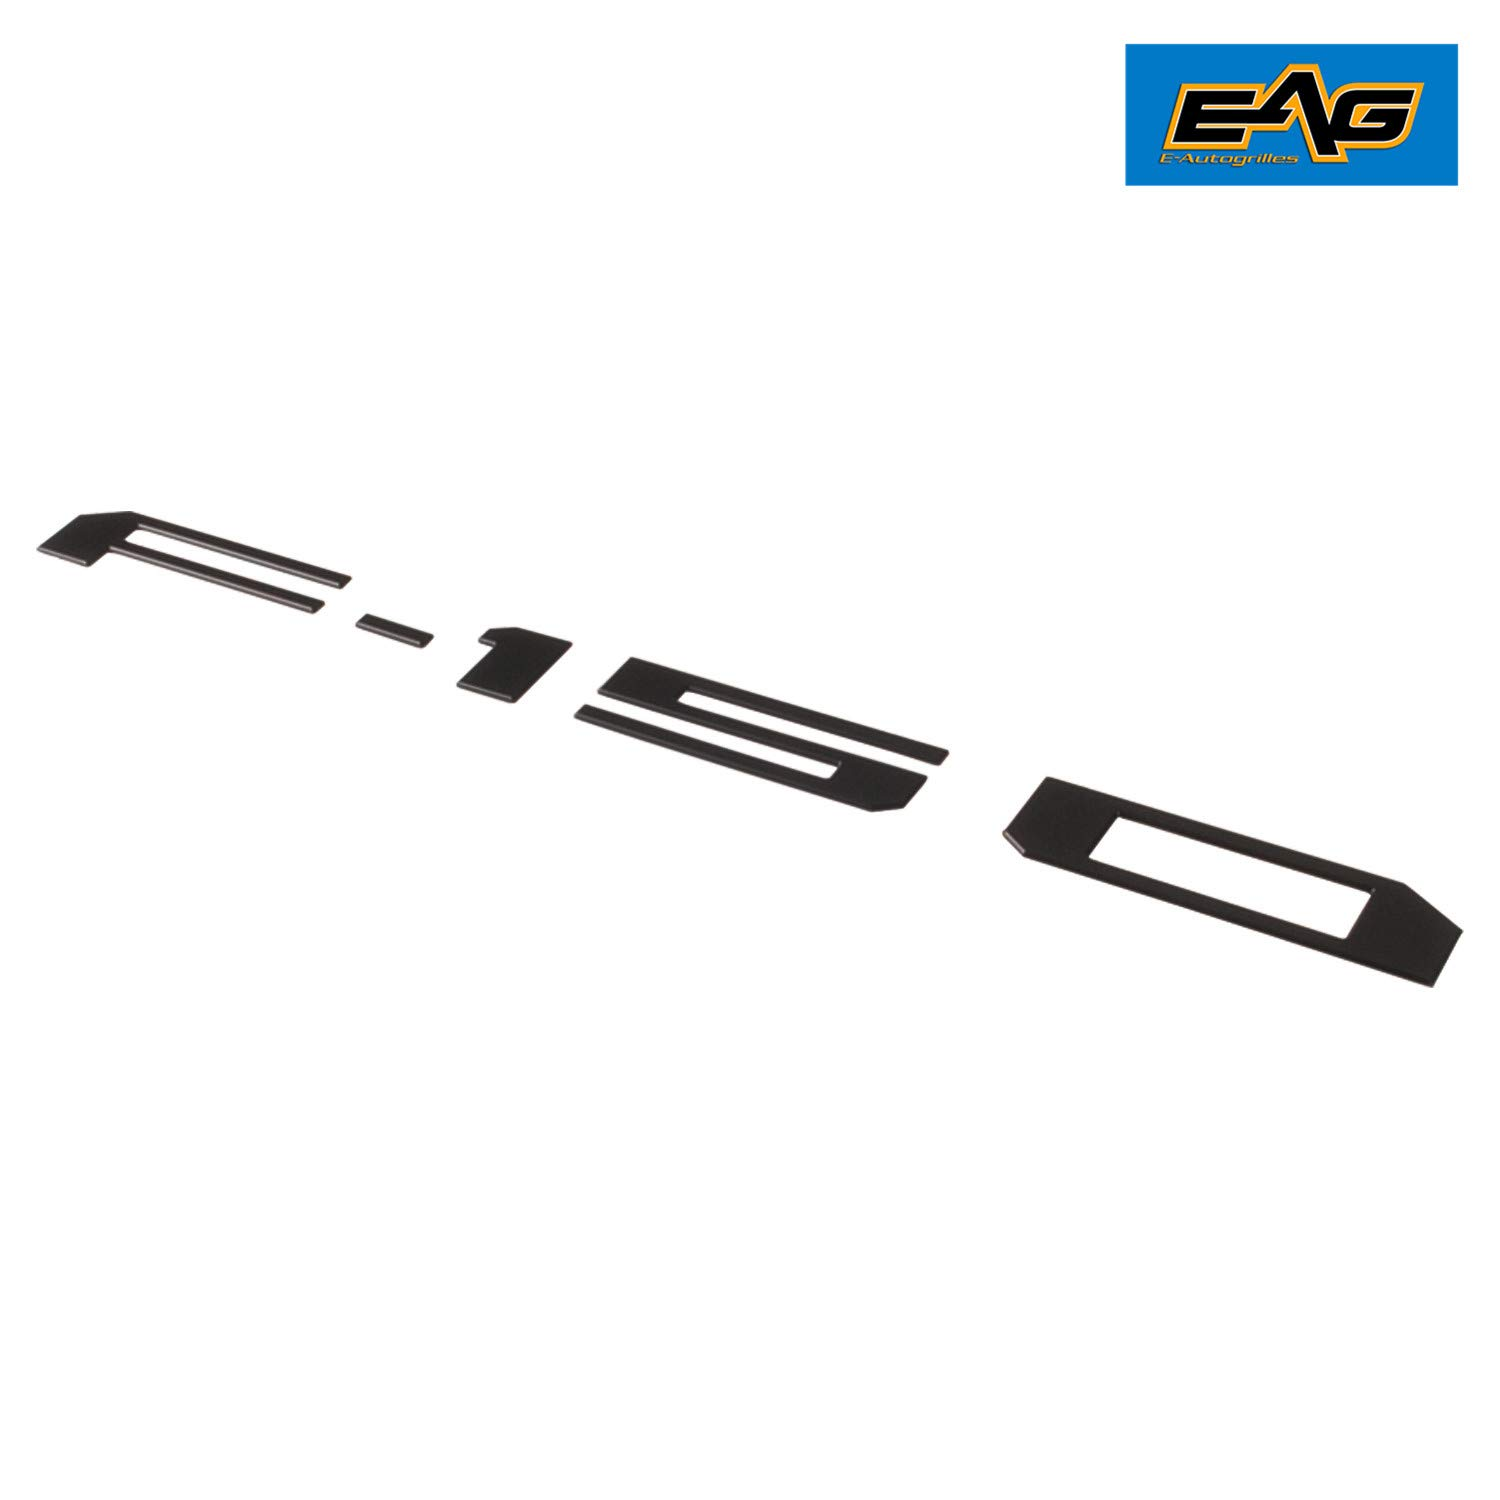 EAG Rear Tailgate Insert Letters Fit for 2018 2019 Ford F-150 Matte Black